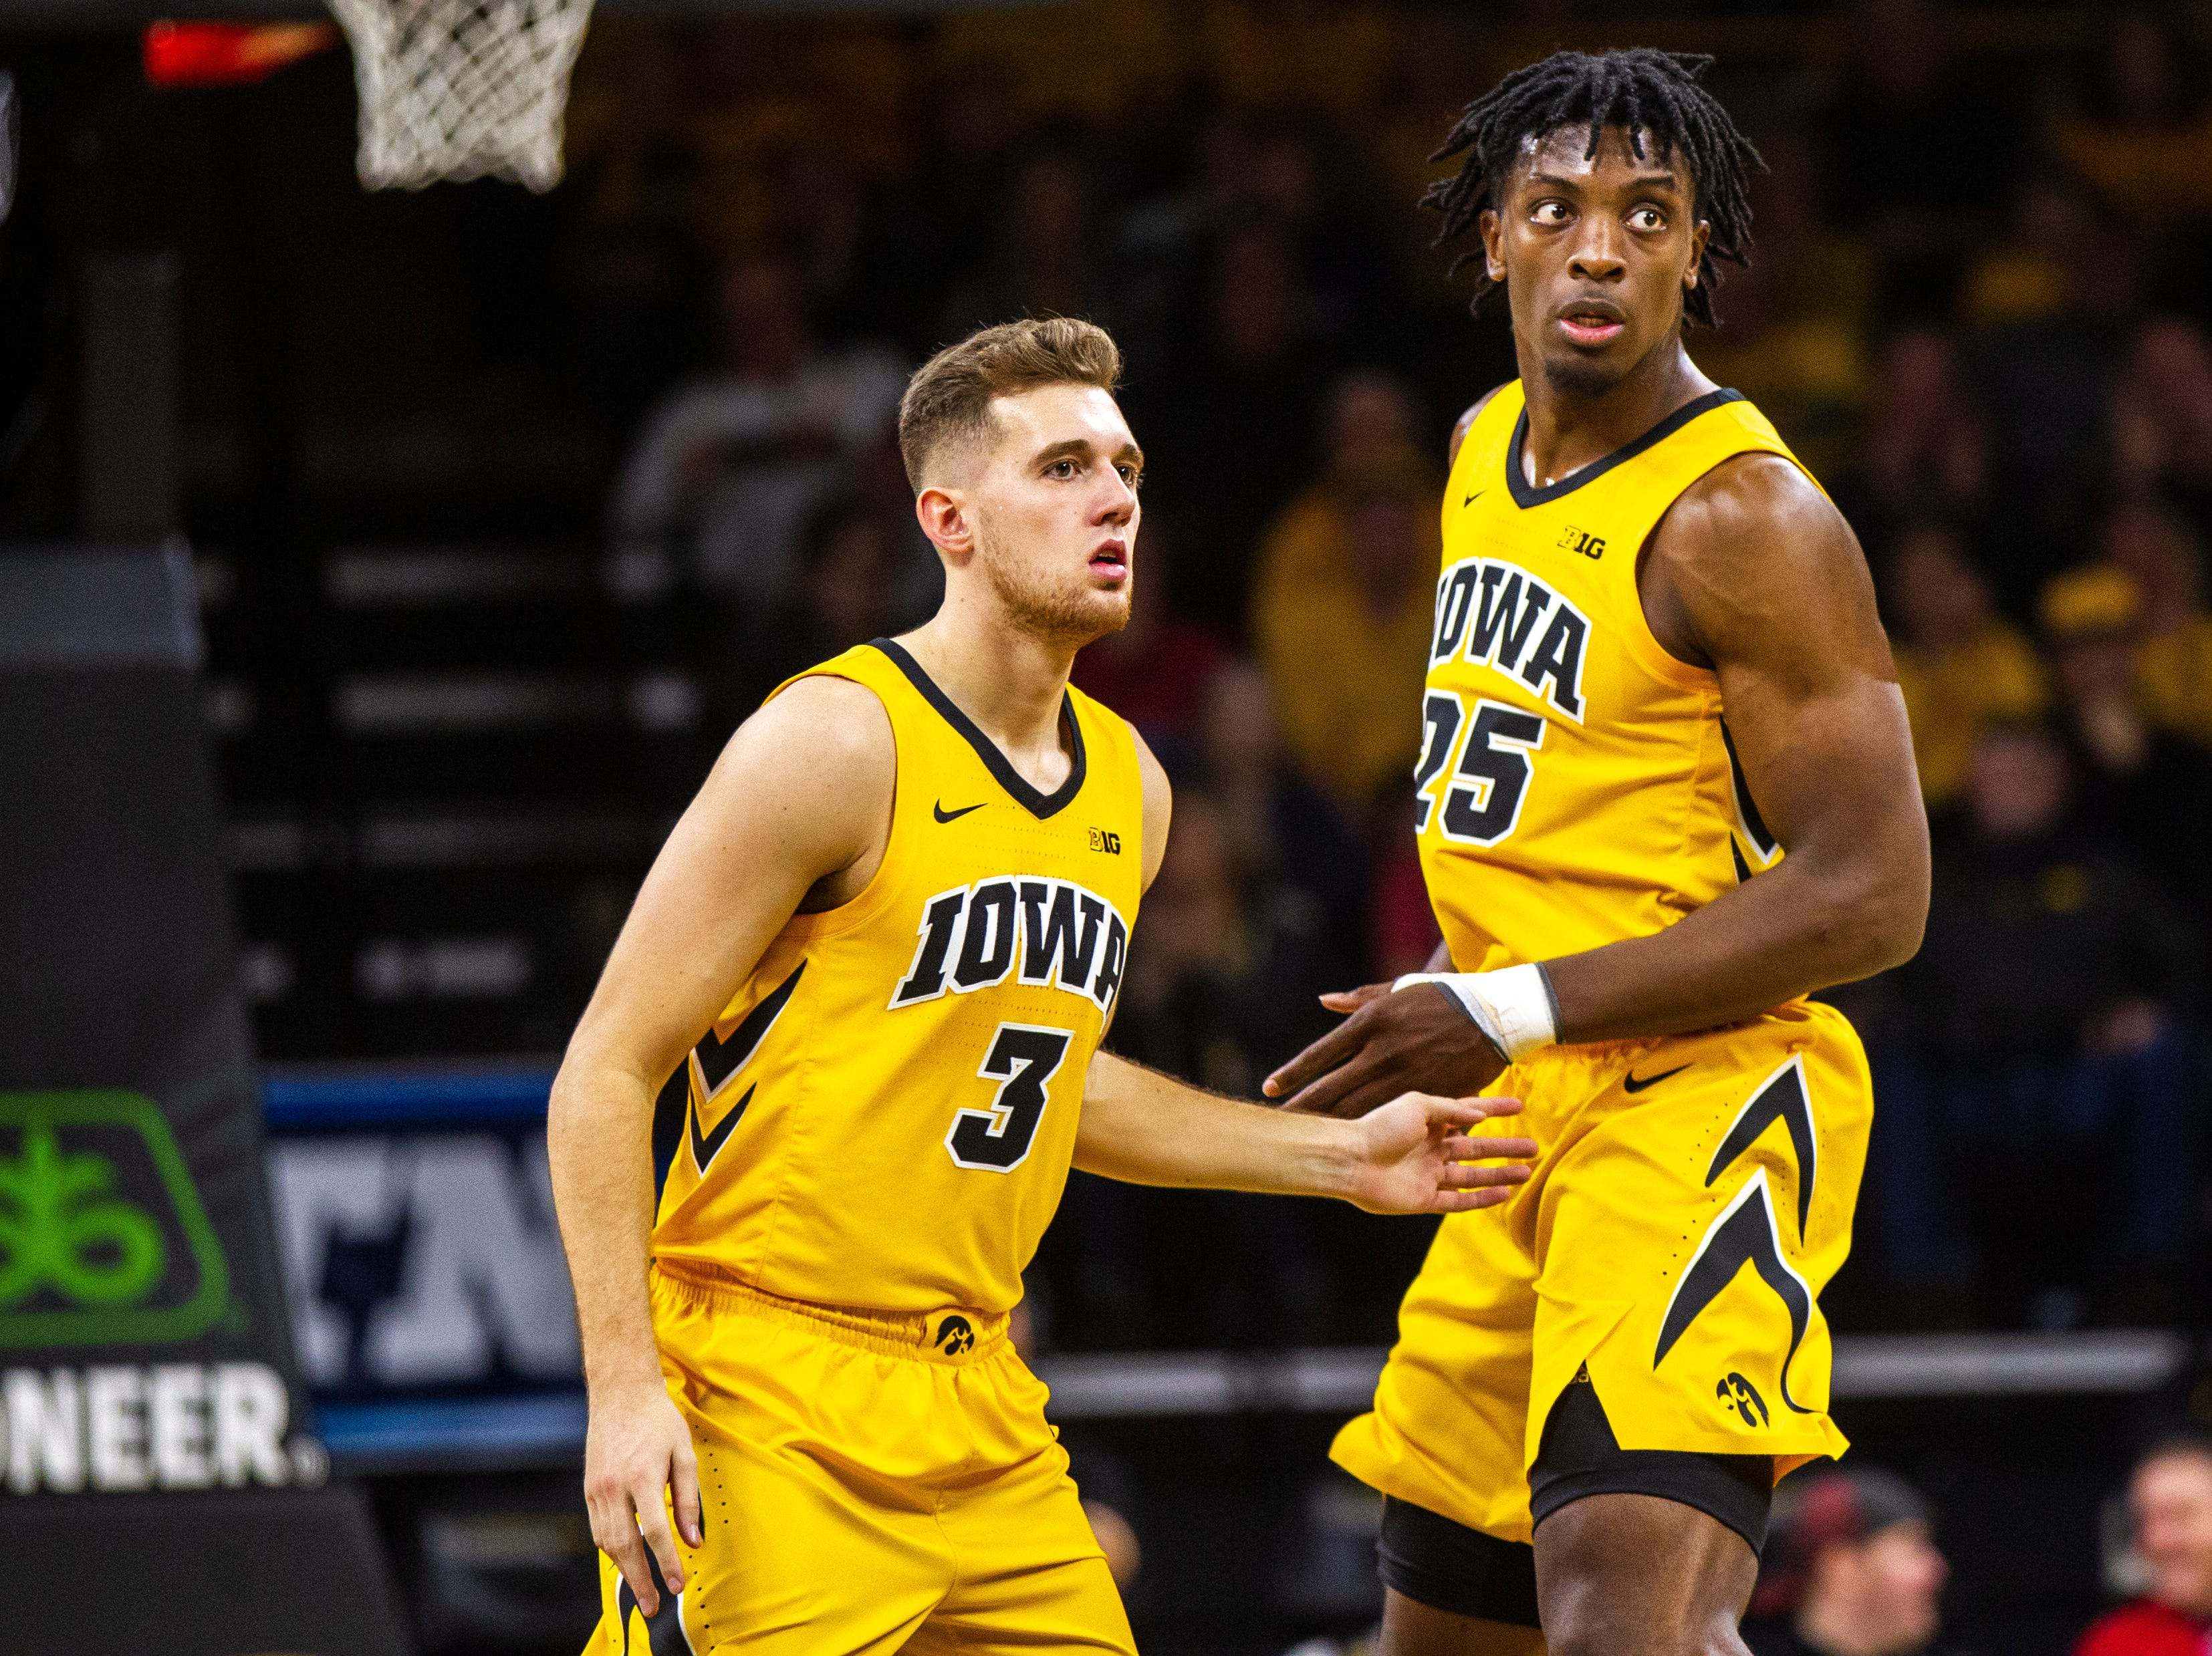 Iowa guard Jordan Bohannon (3) high-fives Iowa forward Tyler Cook (25) during a NCAA Big Ten Conference men's basketball game on Friday, Nov. 30, 2018, at Carver-Hawkeye Arena in Iowa City.